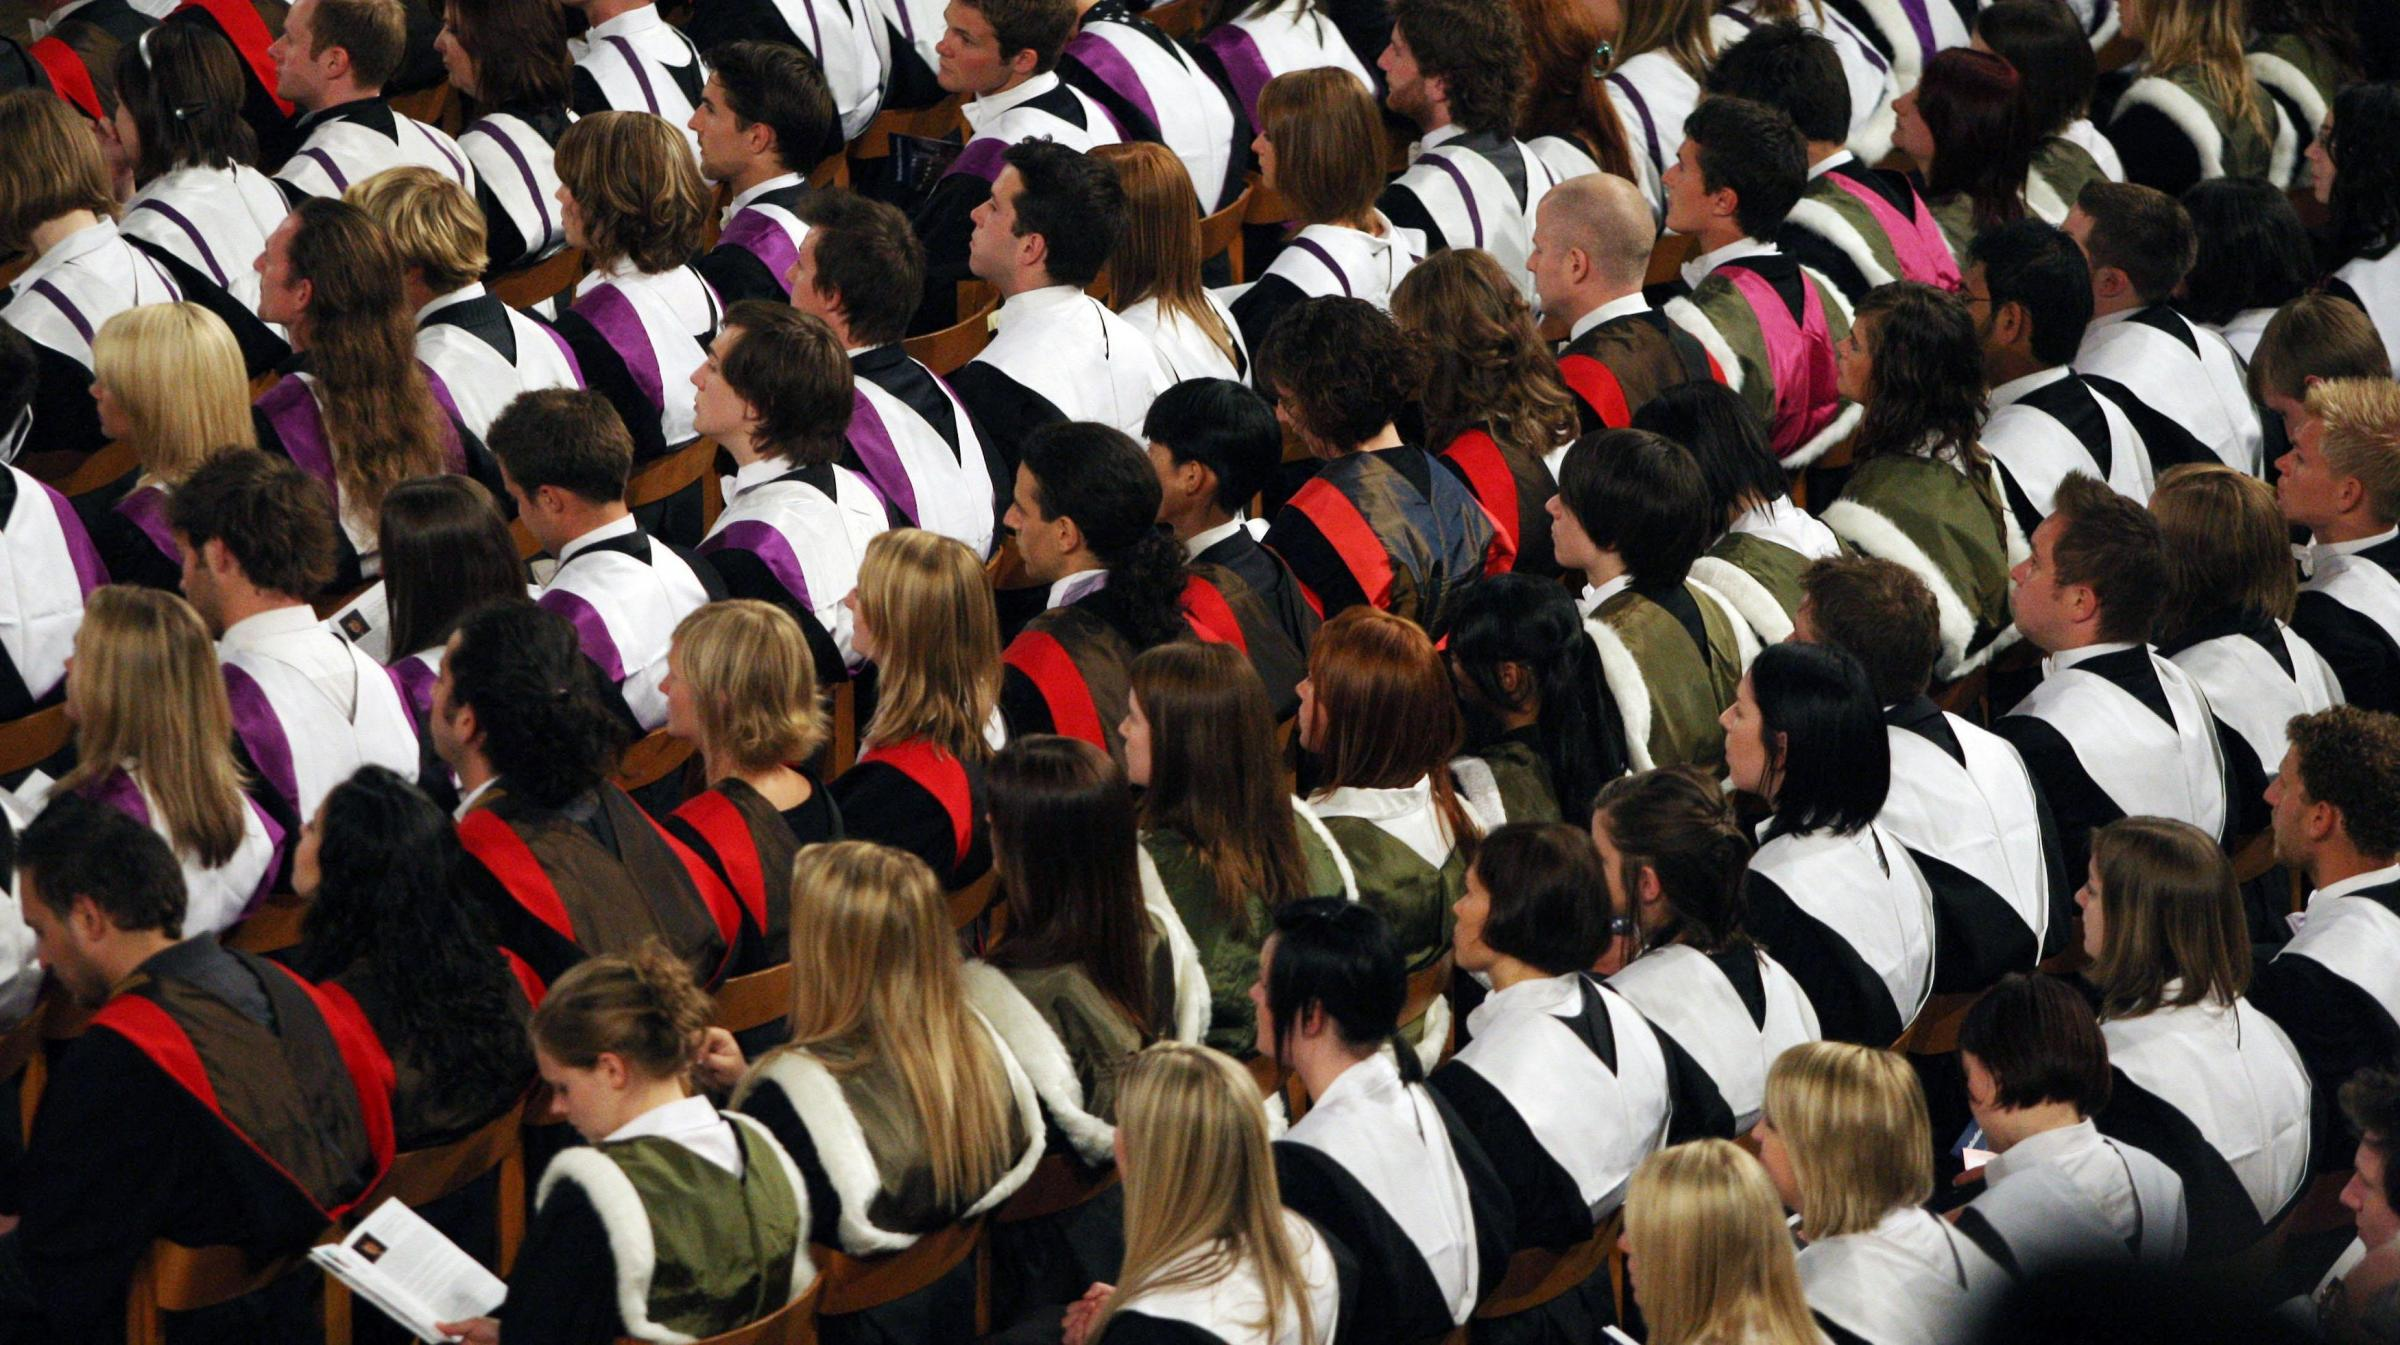 Concerns raised over post-Brexit immigration policy effect on Scots universities